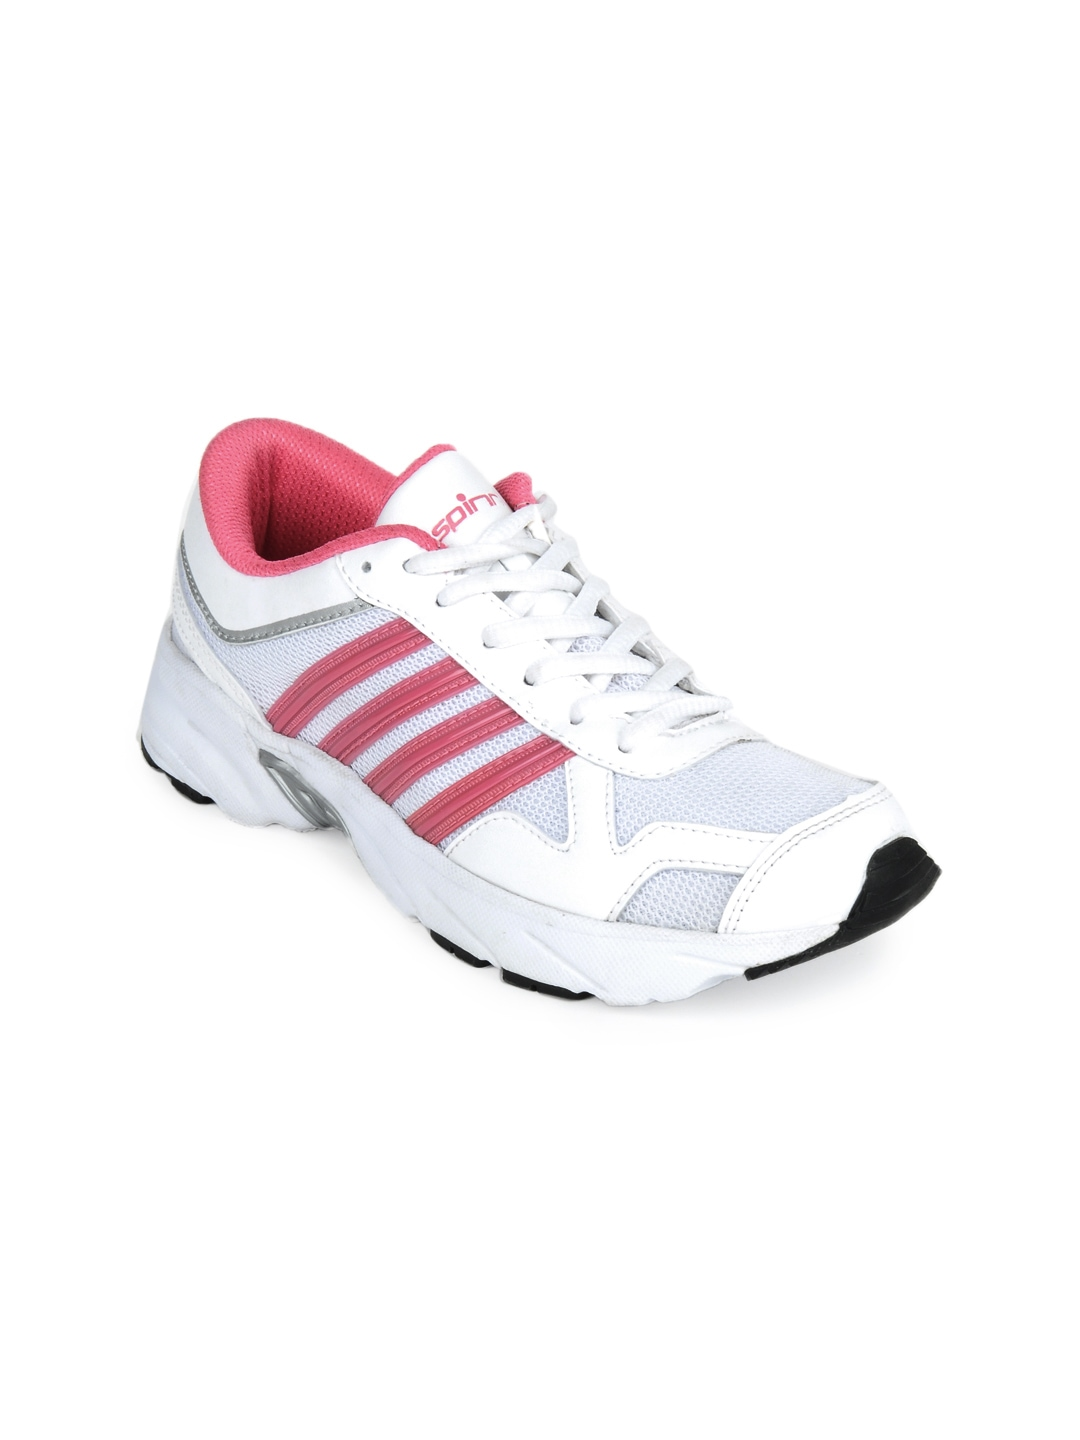 myntra spinn white pink sports shoes 106652 buy